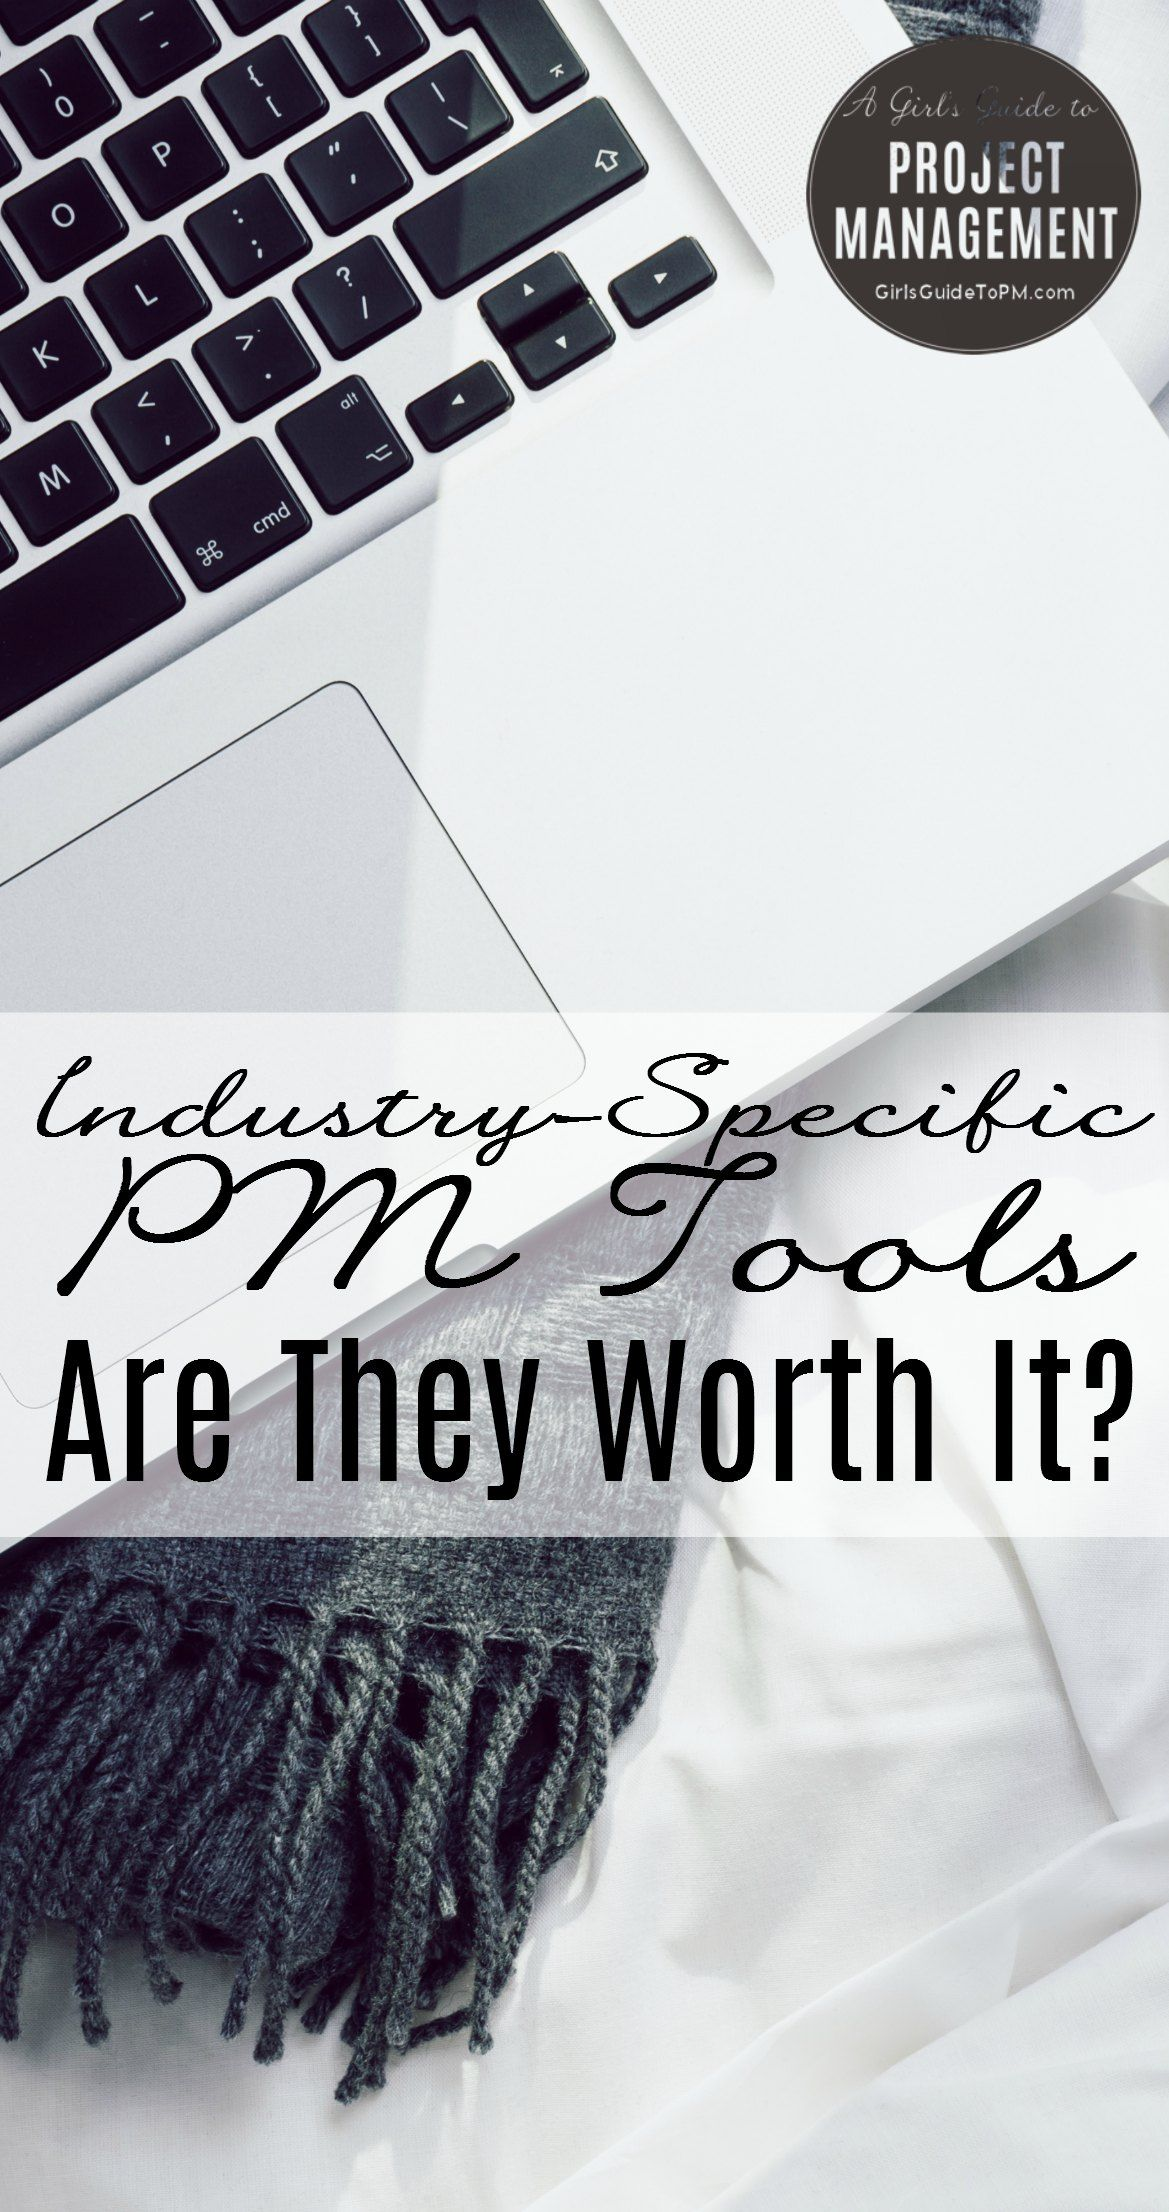 Industry Specific Pm Tools Are They Worth It Girls Guide To